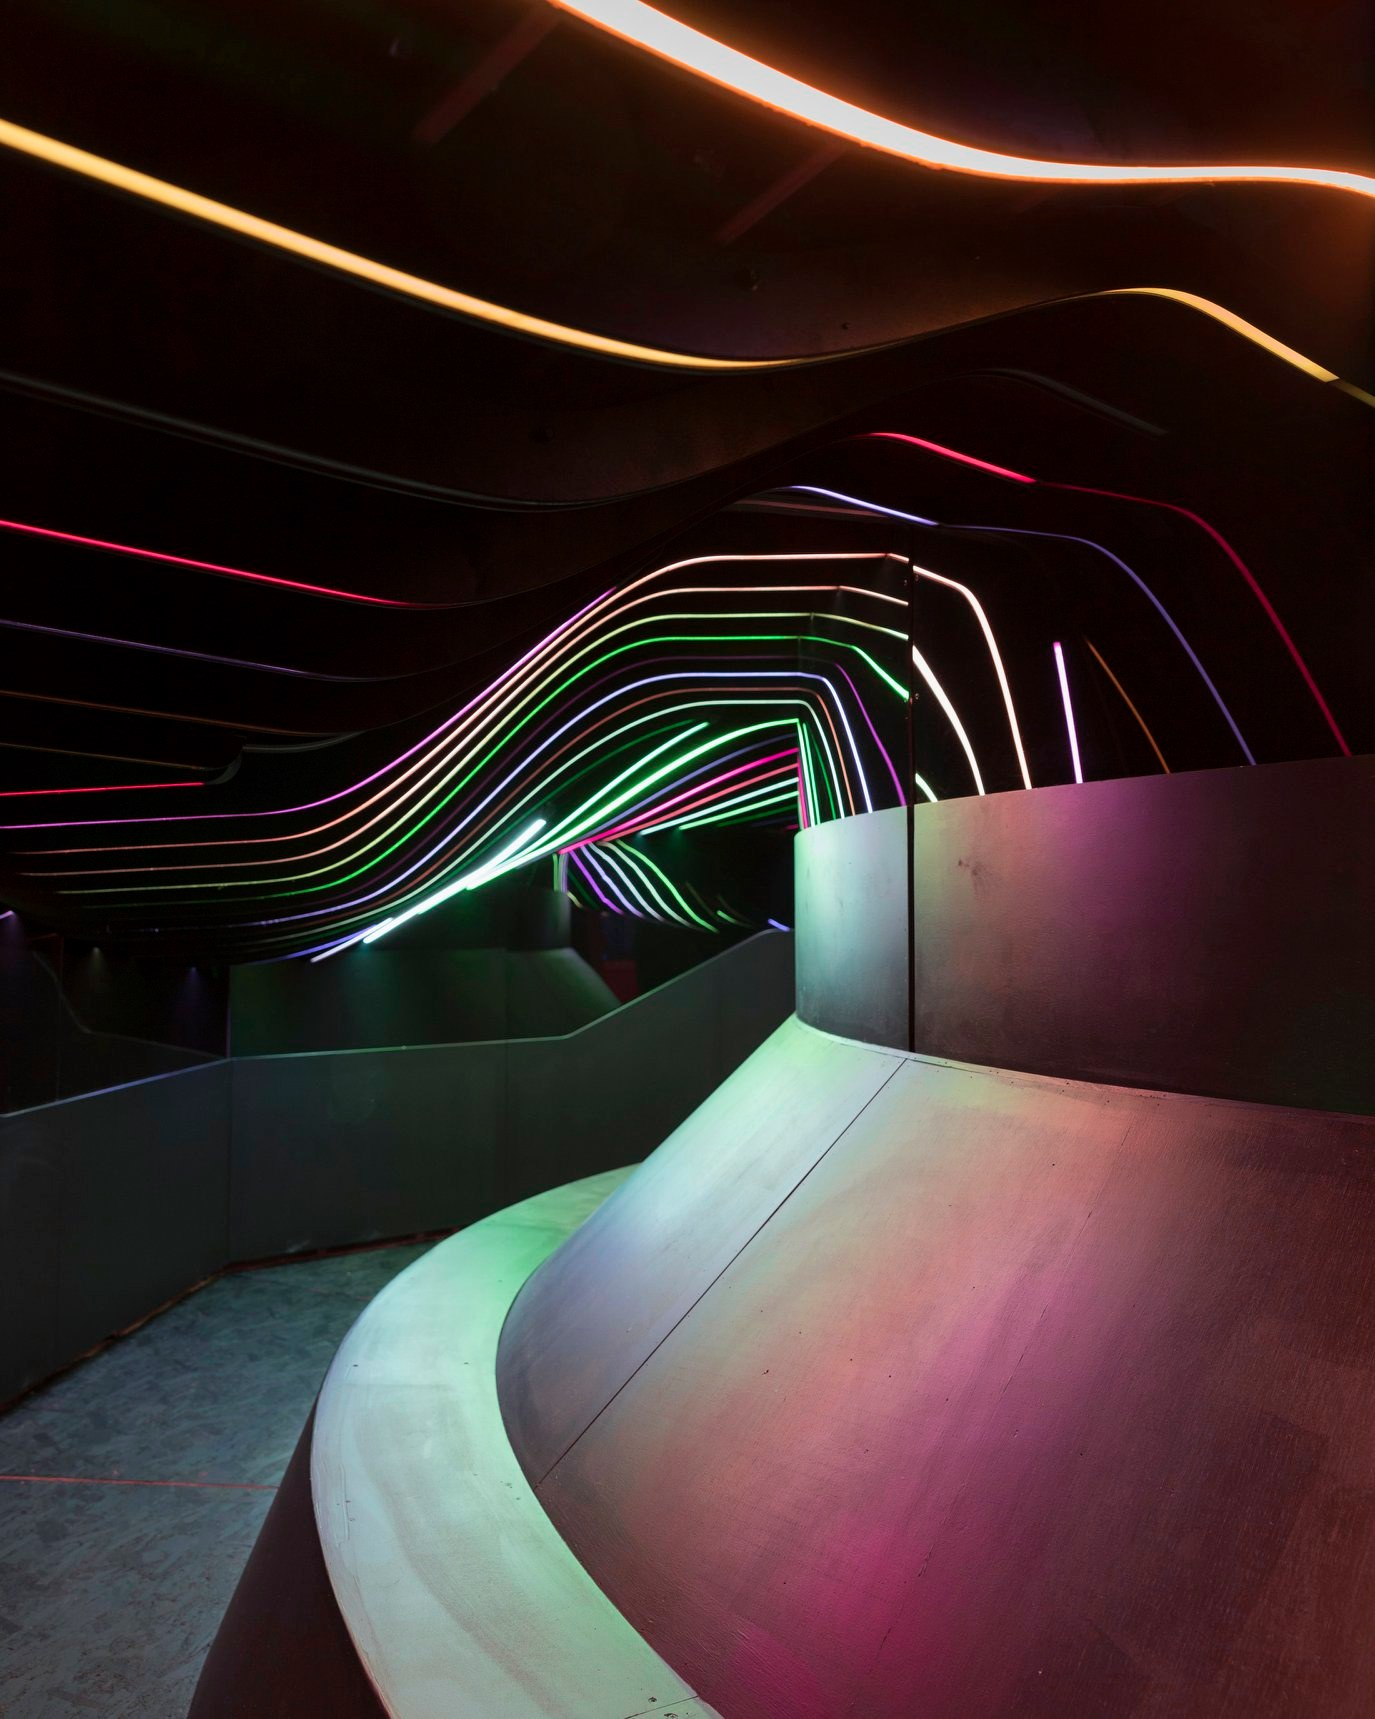 Art exhibit room with neon lighting at Meow Wolf in Santa Fe, NM